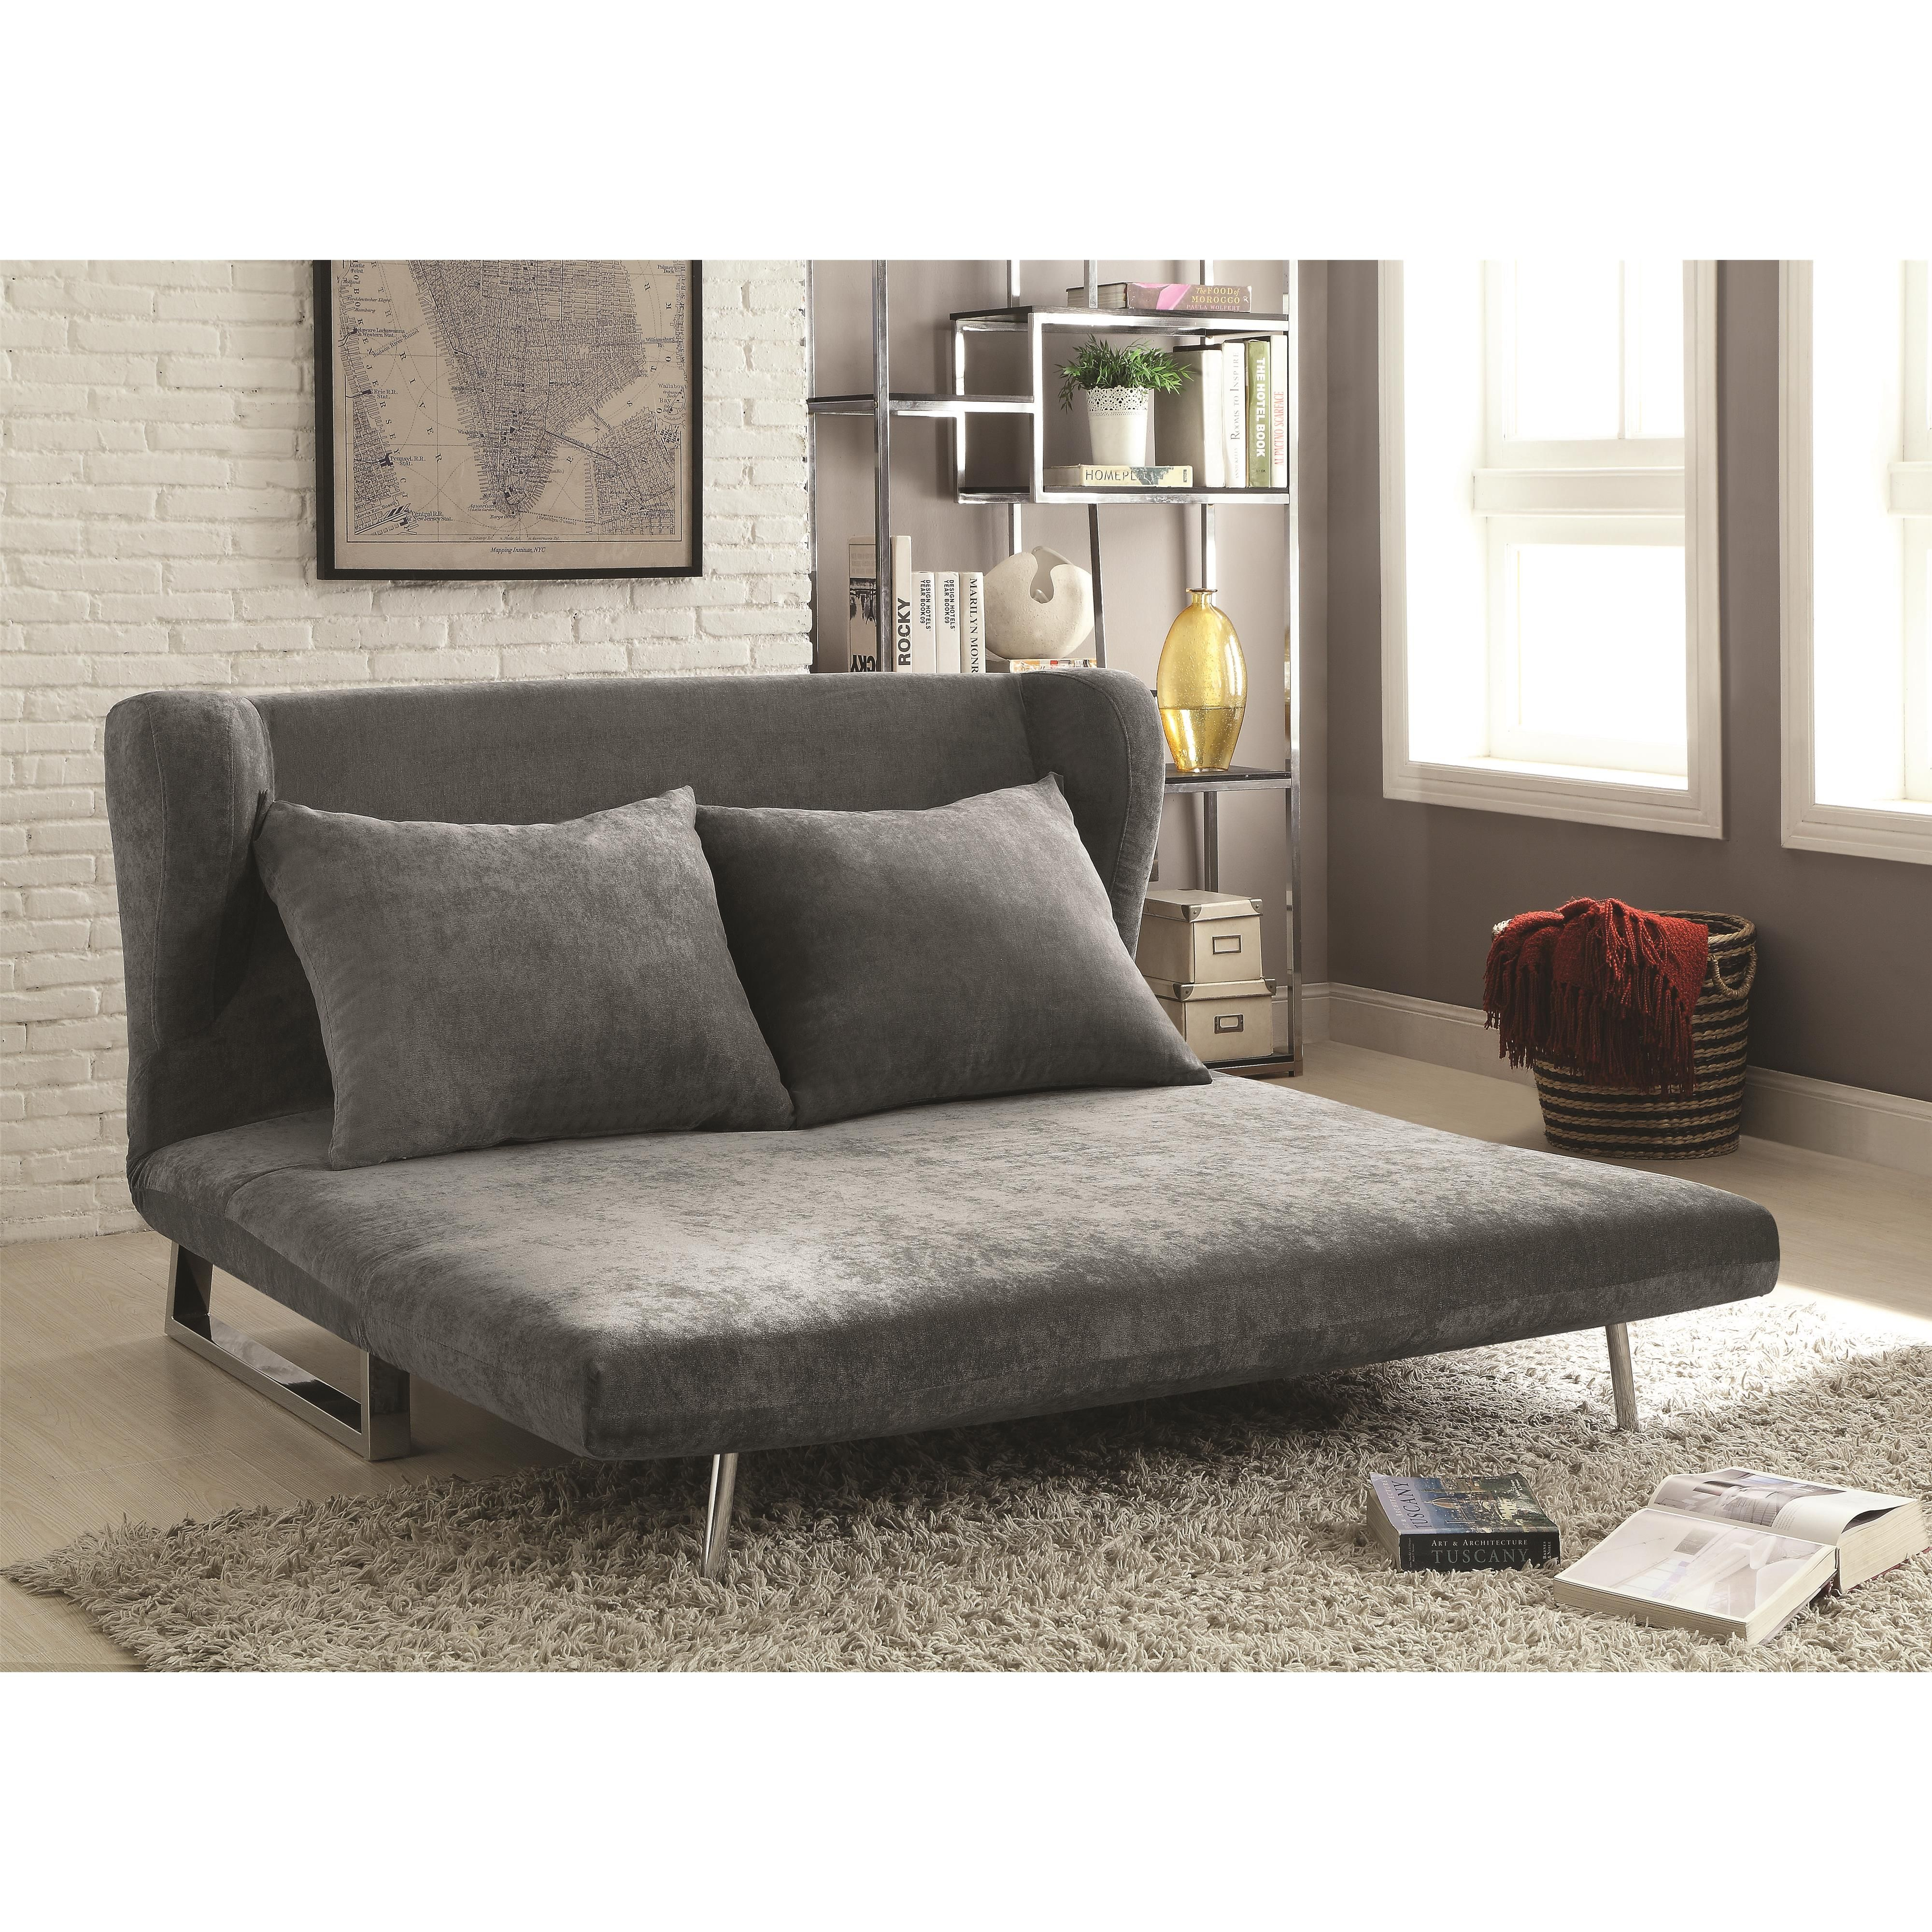 Futons Transitional Velvet Sofa Bed